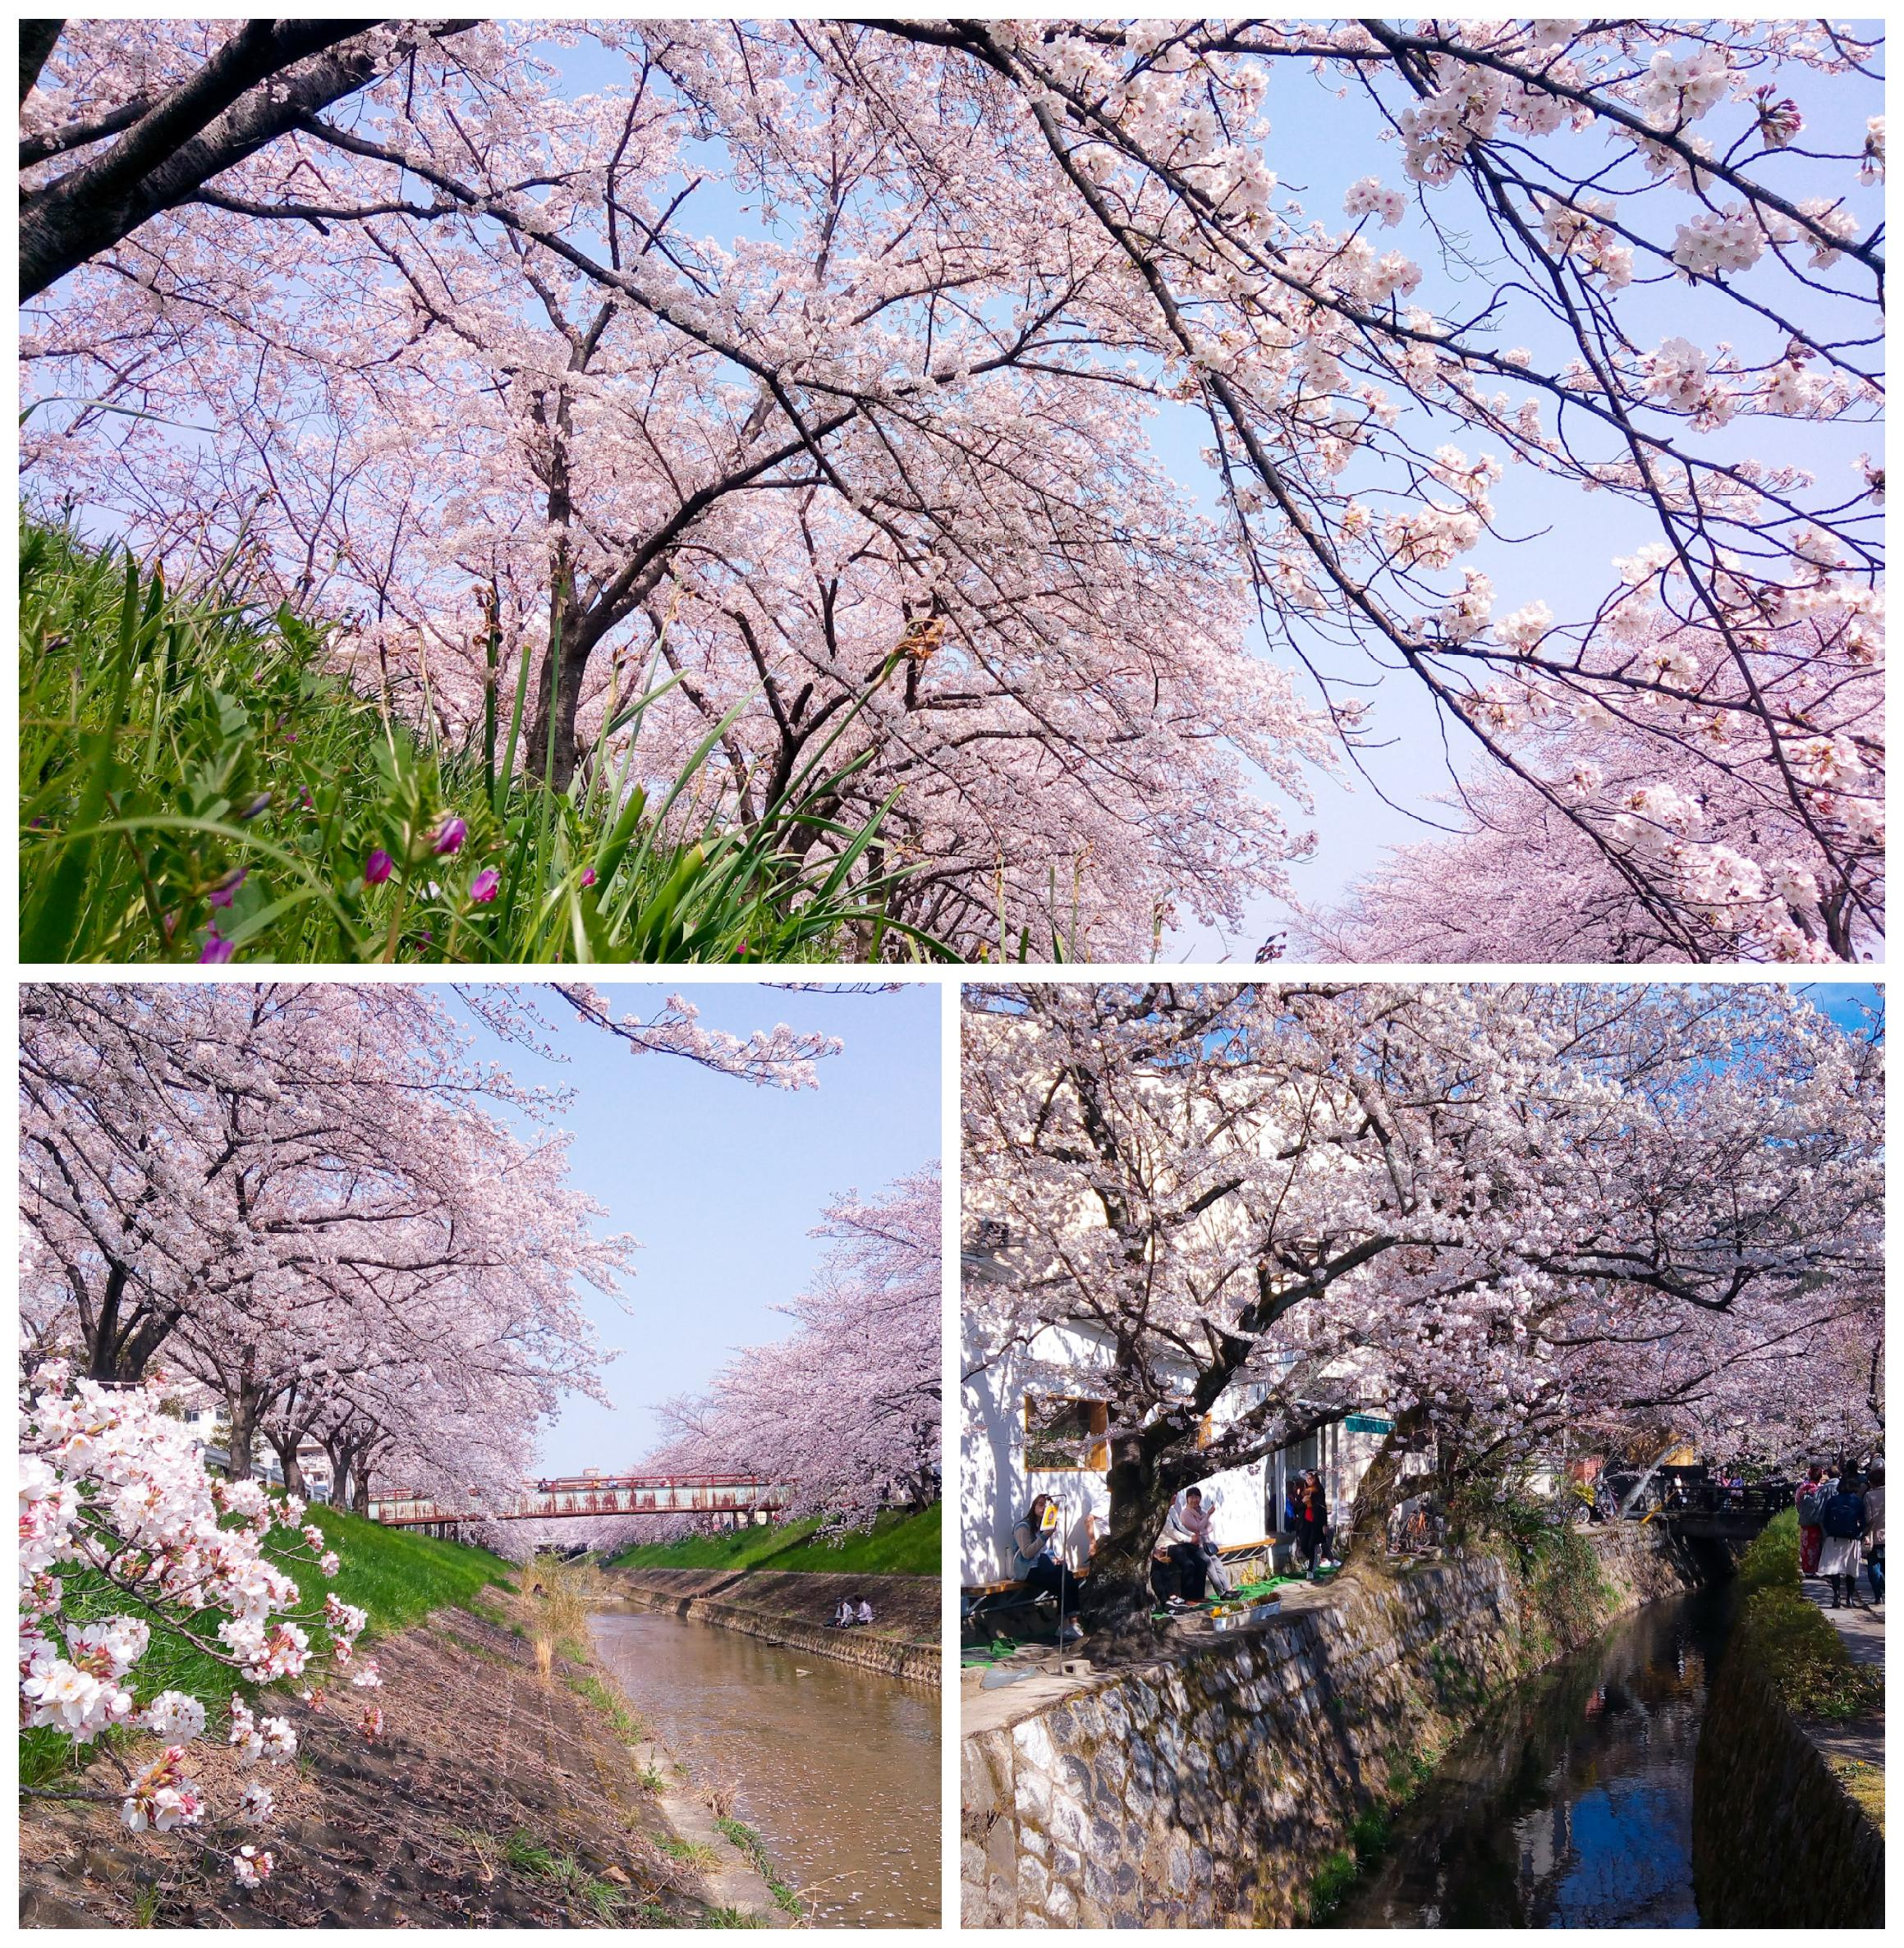 Urban photos - Kyoto and Nara, Japan.'Blossoming Japan.' Found theses beautiful flourishes of cheery blossom while walking around Kyoto and Nara. Many times the locals were either taking selfies under the vibrant canopies, while dress in tradition kimonos, or they were holding Hanami parties 'cherry blossom picnics.' sketchbookexplorer.com @davidasutton @sketchbookexplorer Facebook.com/davidanthonysutton #japan #nara #kyoto #travel #travelblog #photography #cheeryblossom #cherryblossomseason